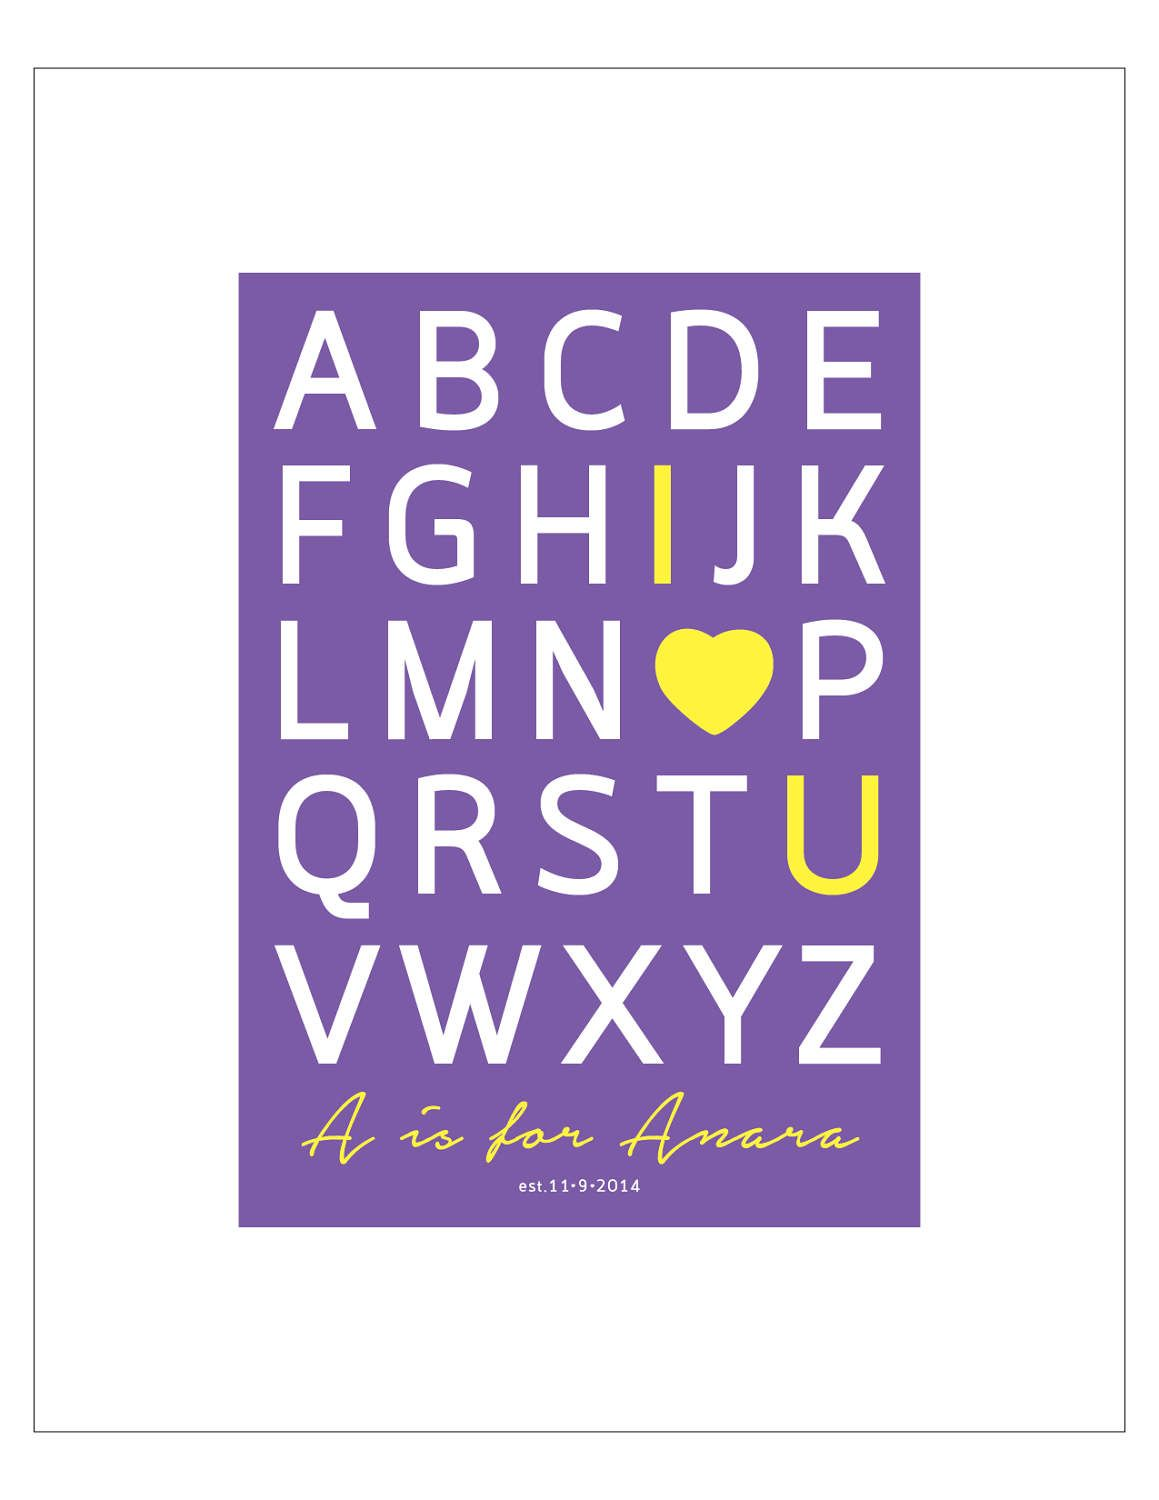 I love you alphabet sign personalized baby gift digital download i love you alphabet sign personalized baby gift digital download printable new negle Gallery